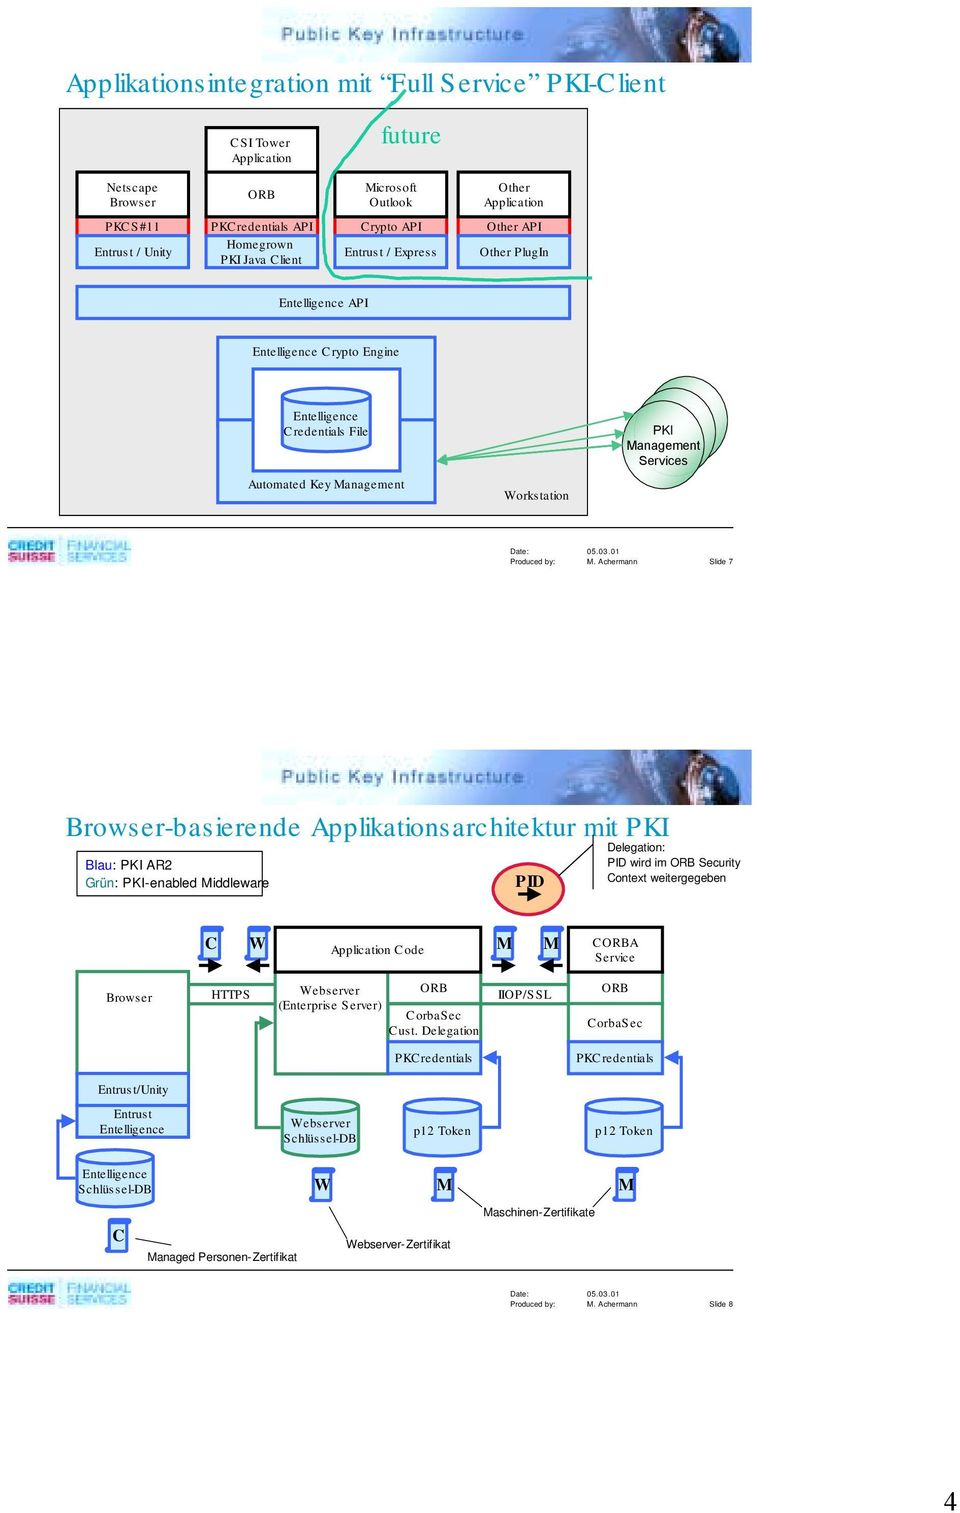 Browser-basierende Applikationsarchitektur mit Blau: AR2 Grün: -enabled Middleware PID Delegation: PID wird im ORB Security Context weitergegeben C W Application Code M M CORBA Service Browser HTTPS